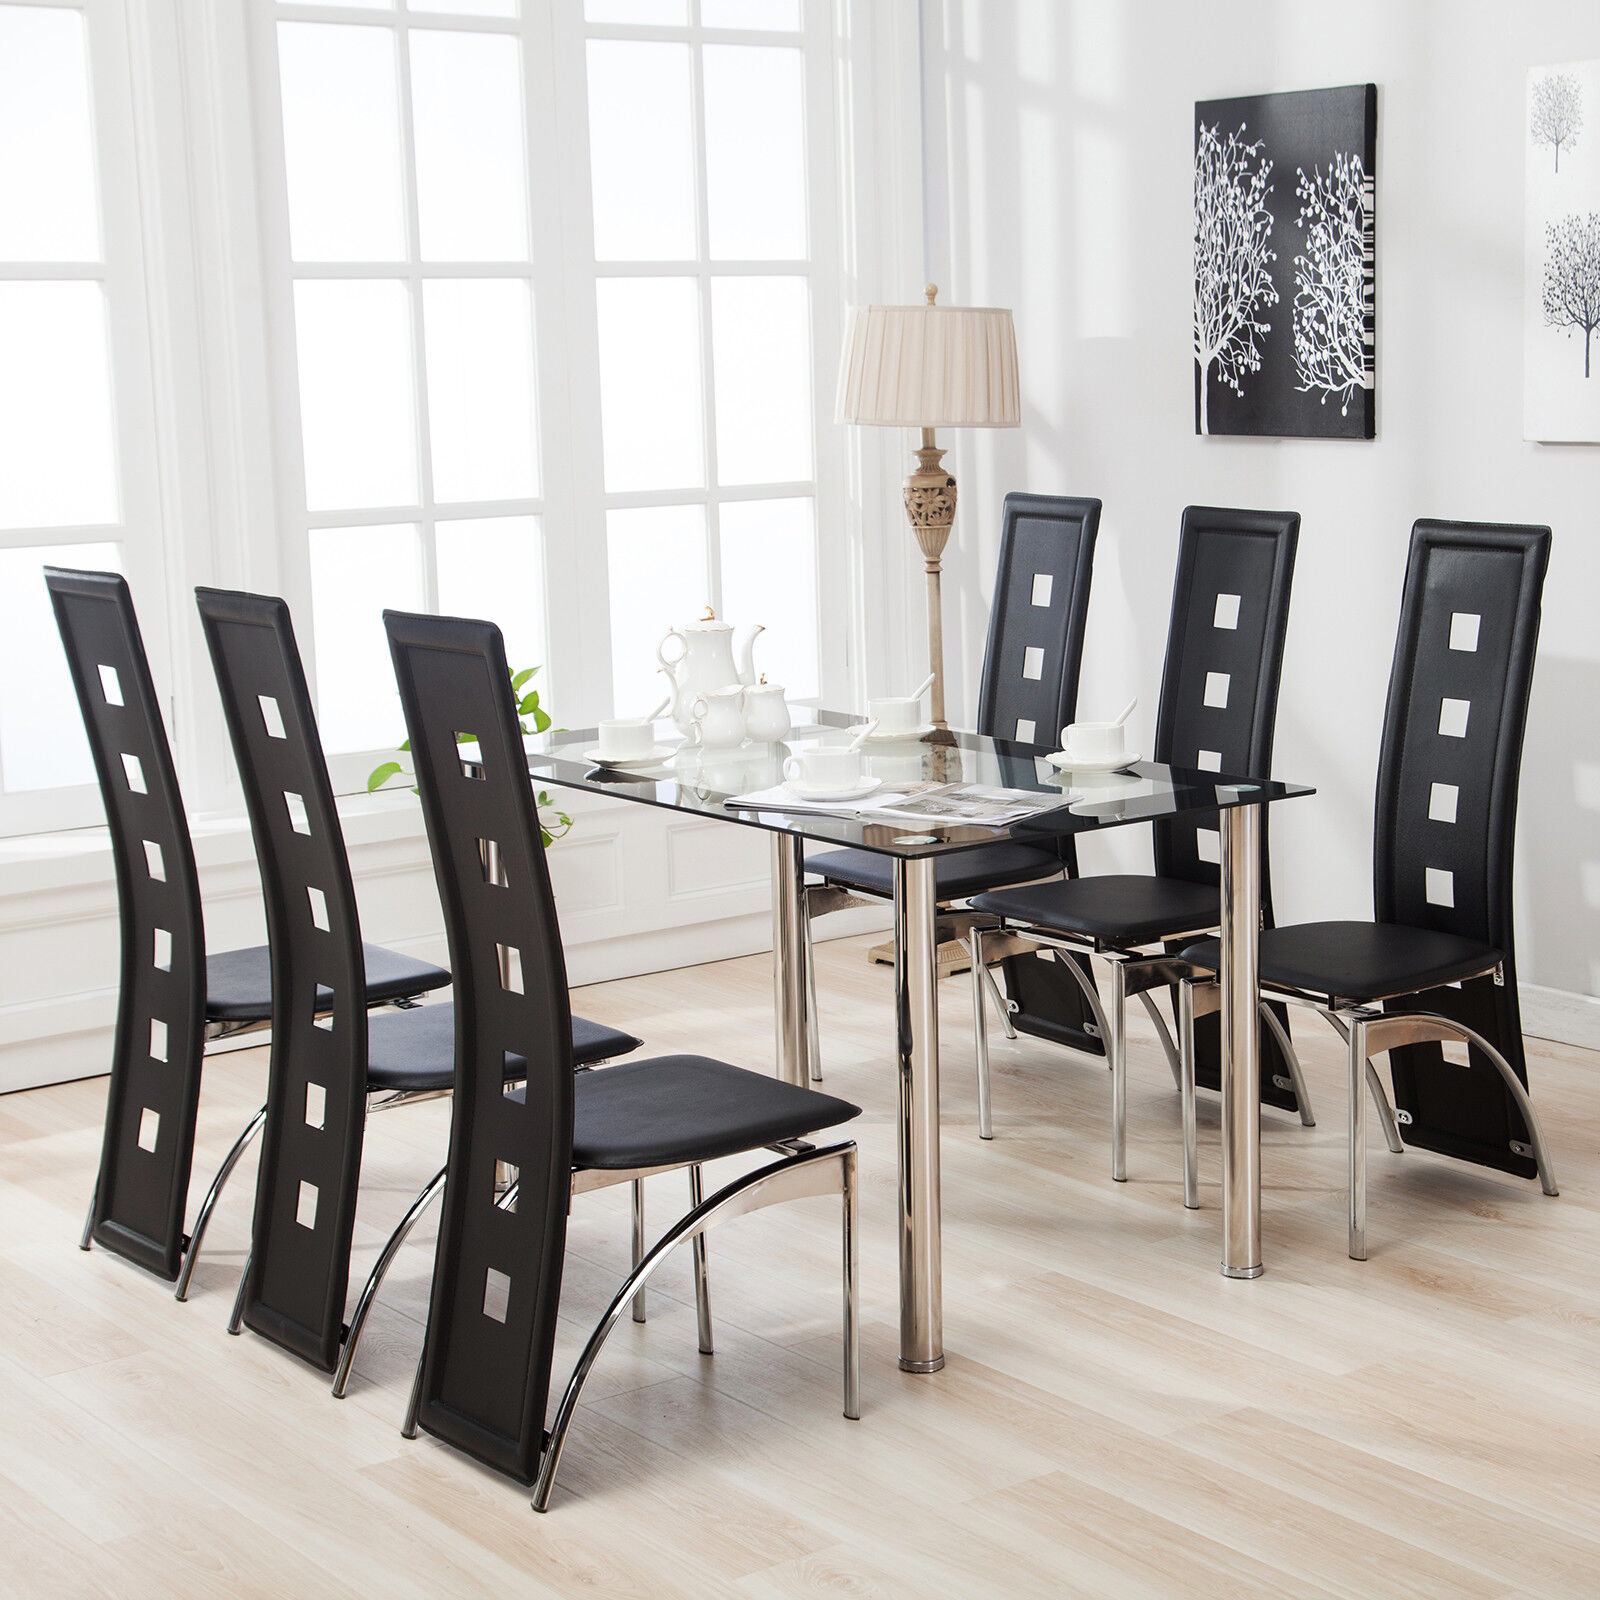 Dining Table With Bench And Chairs Were Comfortable: Glass Dining Table And 6 High Back Faux Leather Chairs Set